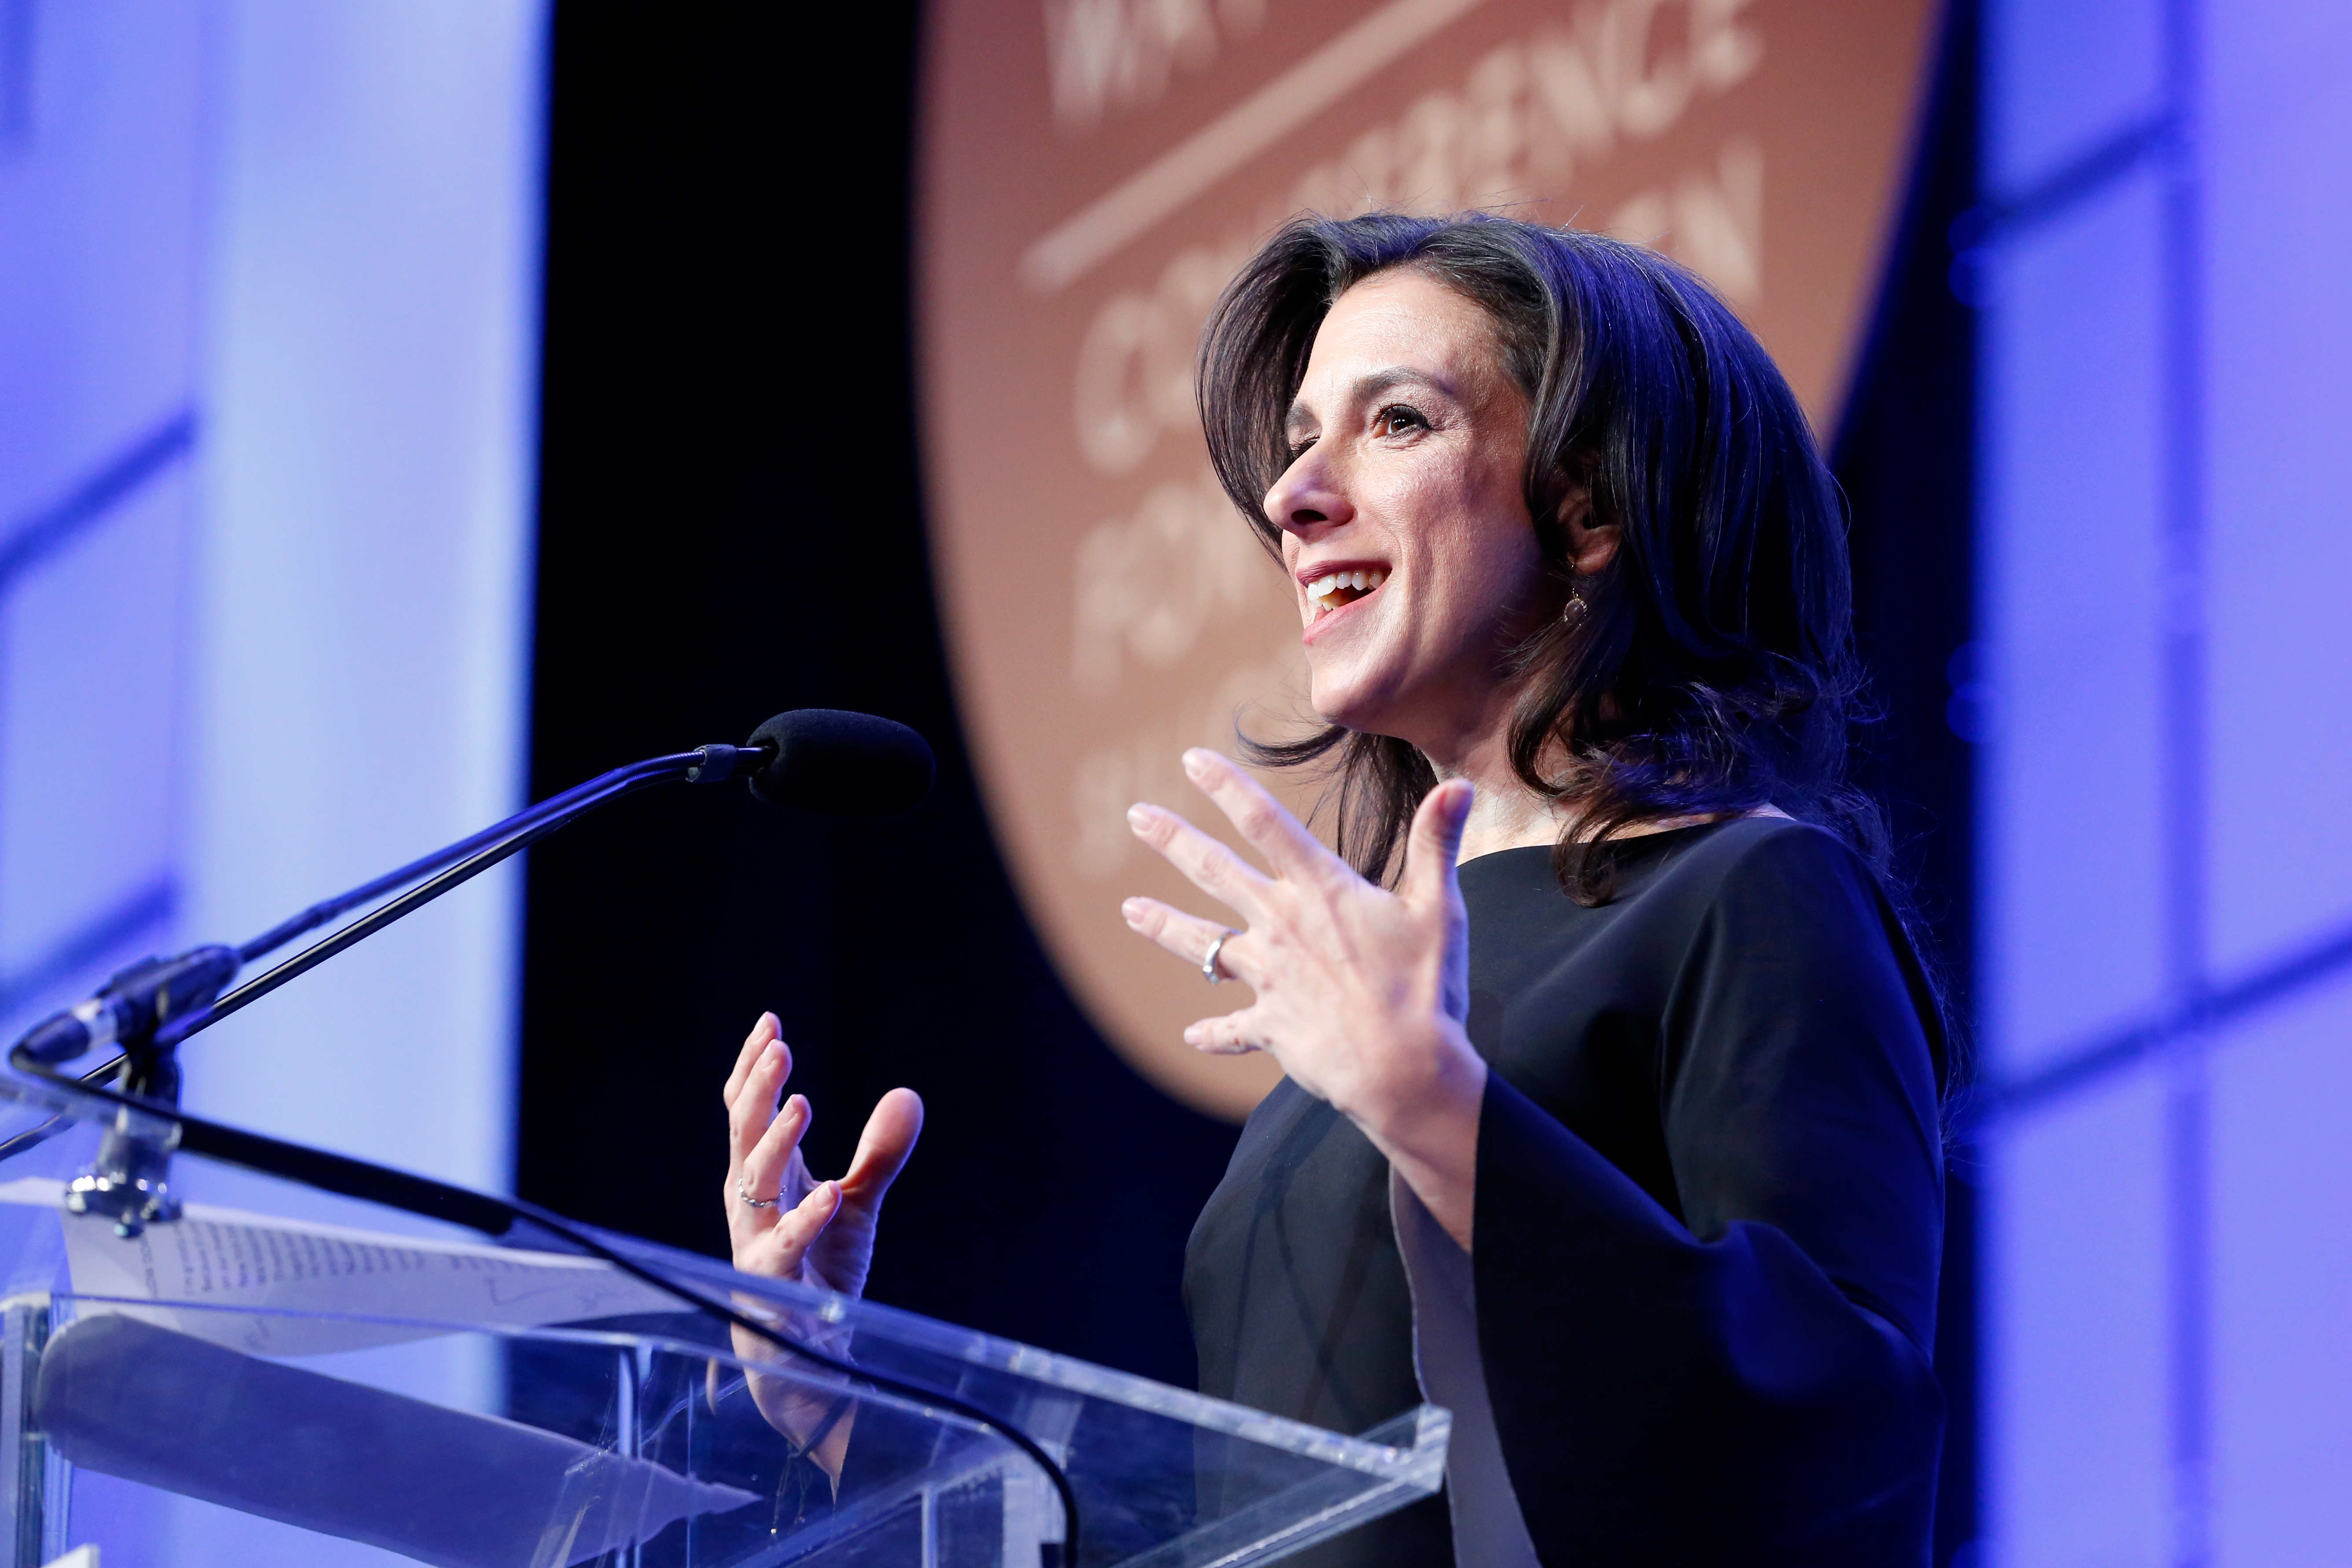 New York Times investigative reporter Jodi Kantor speaks onstage at the Watermark Conference for Women 2018 at San Jose Convention Center in San Jose, Calif., on Feb. 23, 2018.